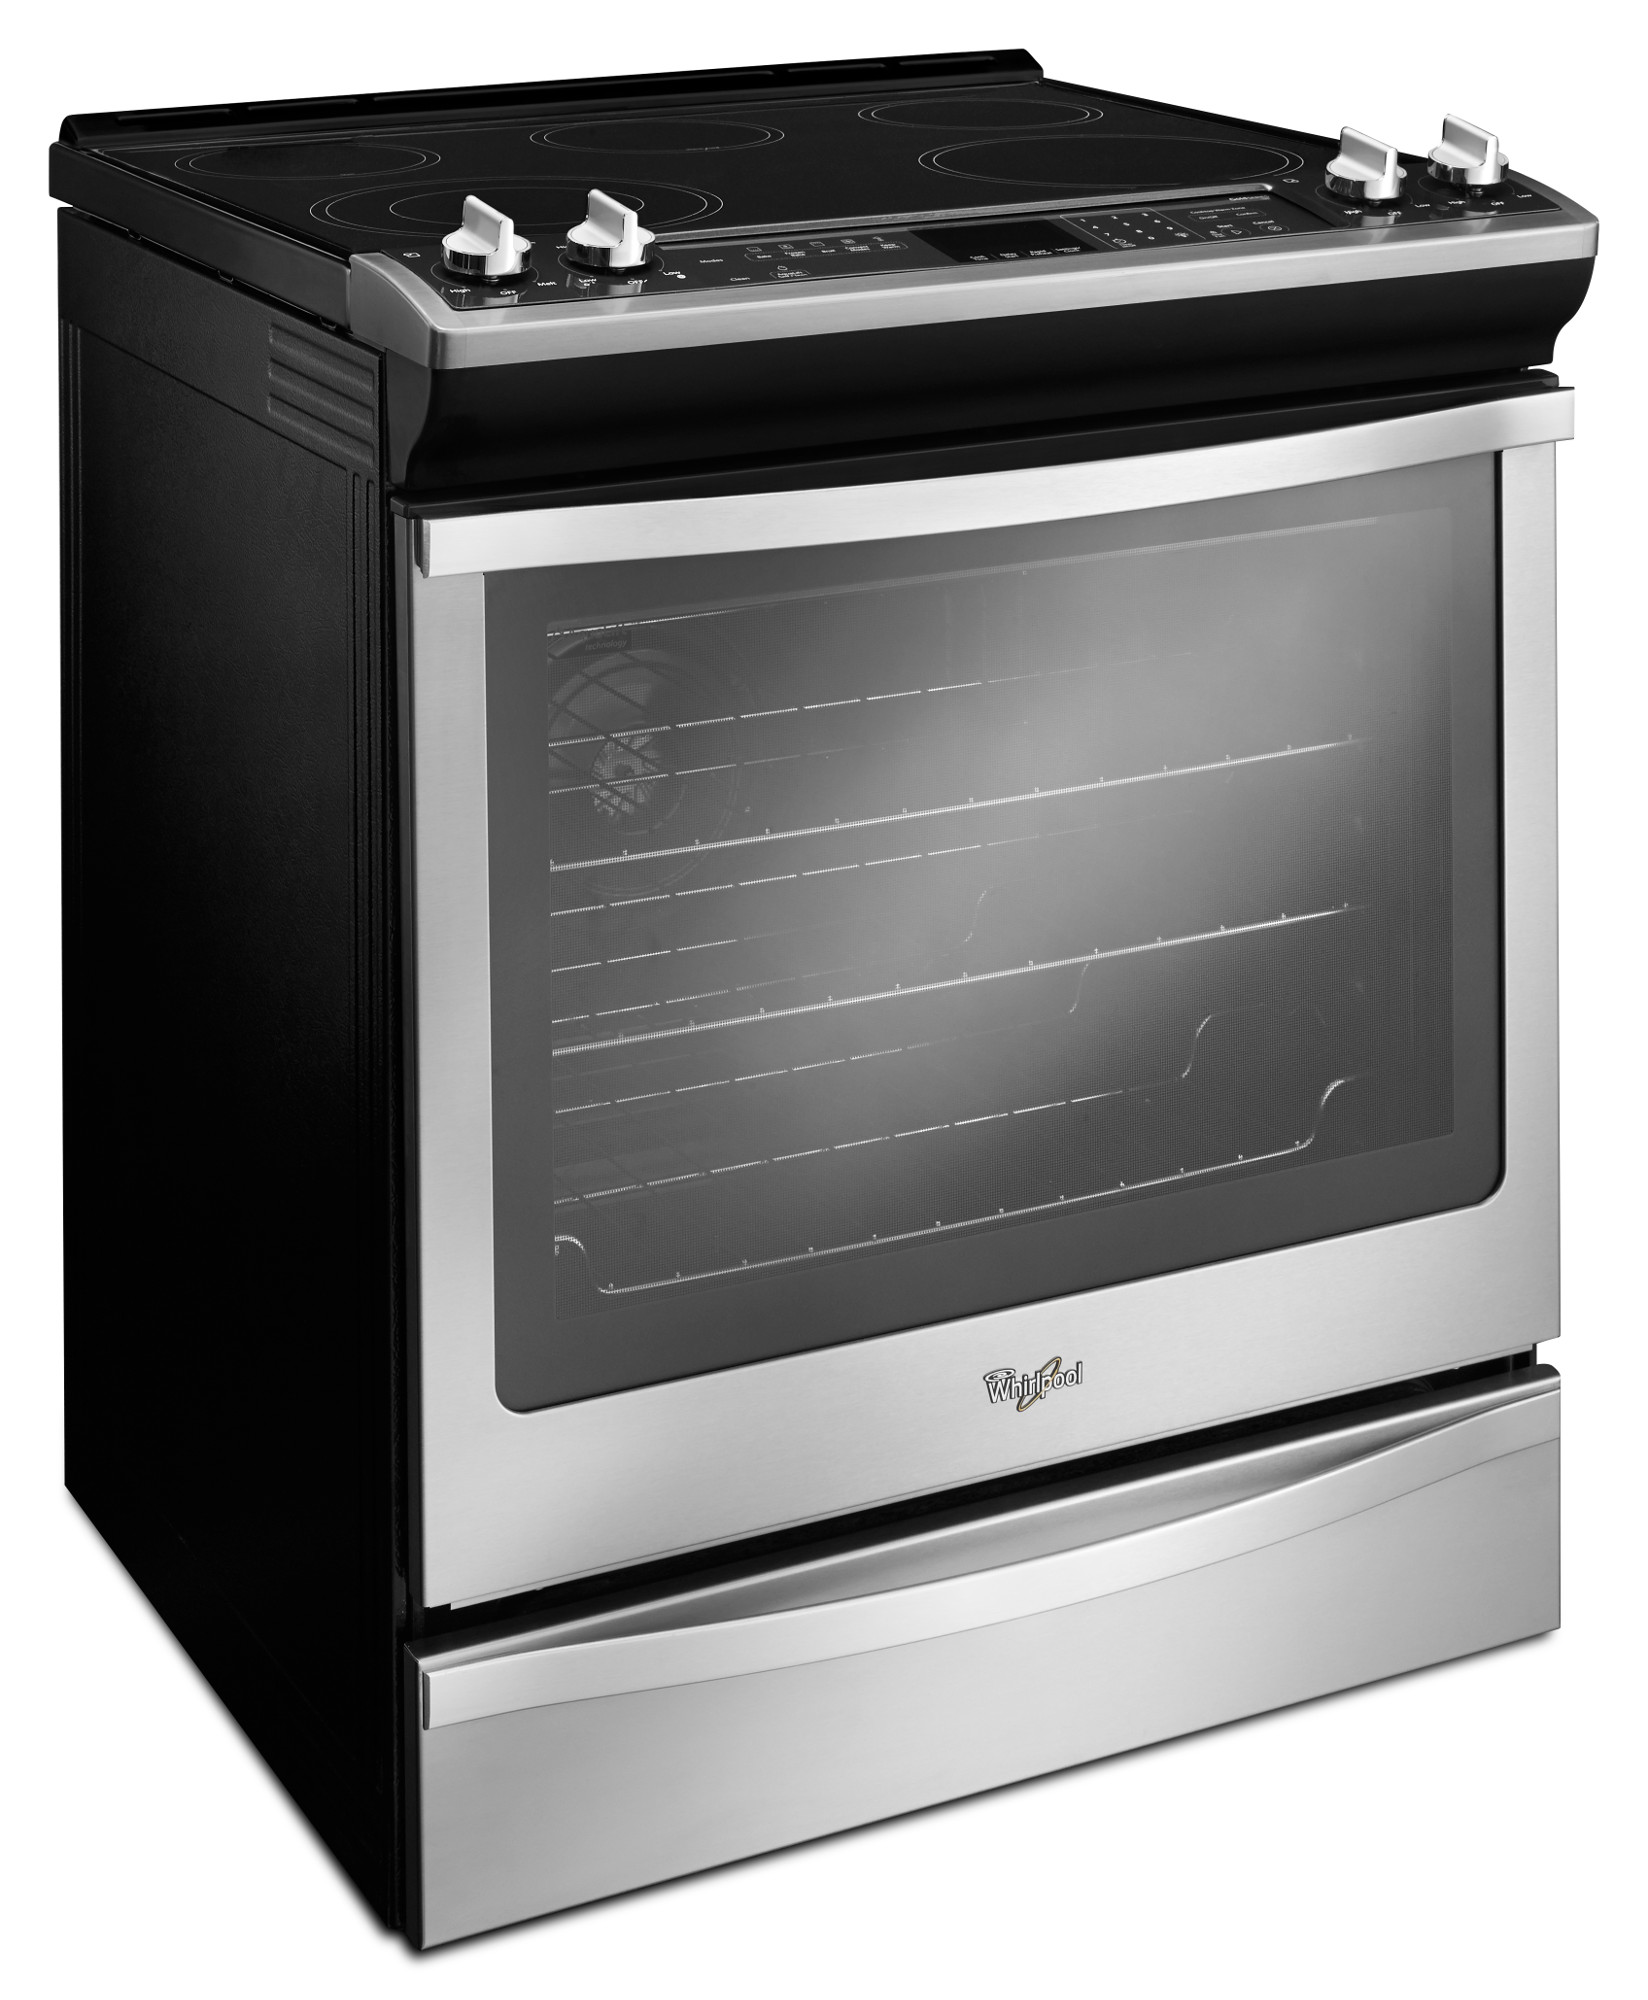 Whirlpool 6.2 cu. ft. Slide-In Electric Range - Stainless Steel